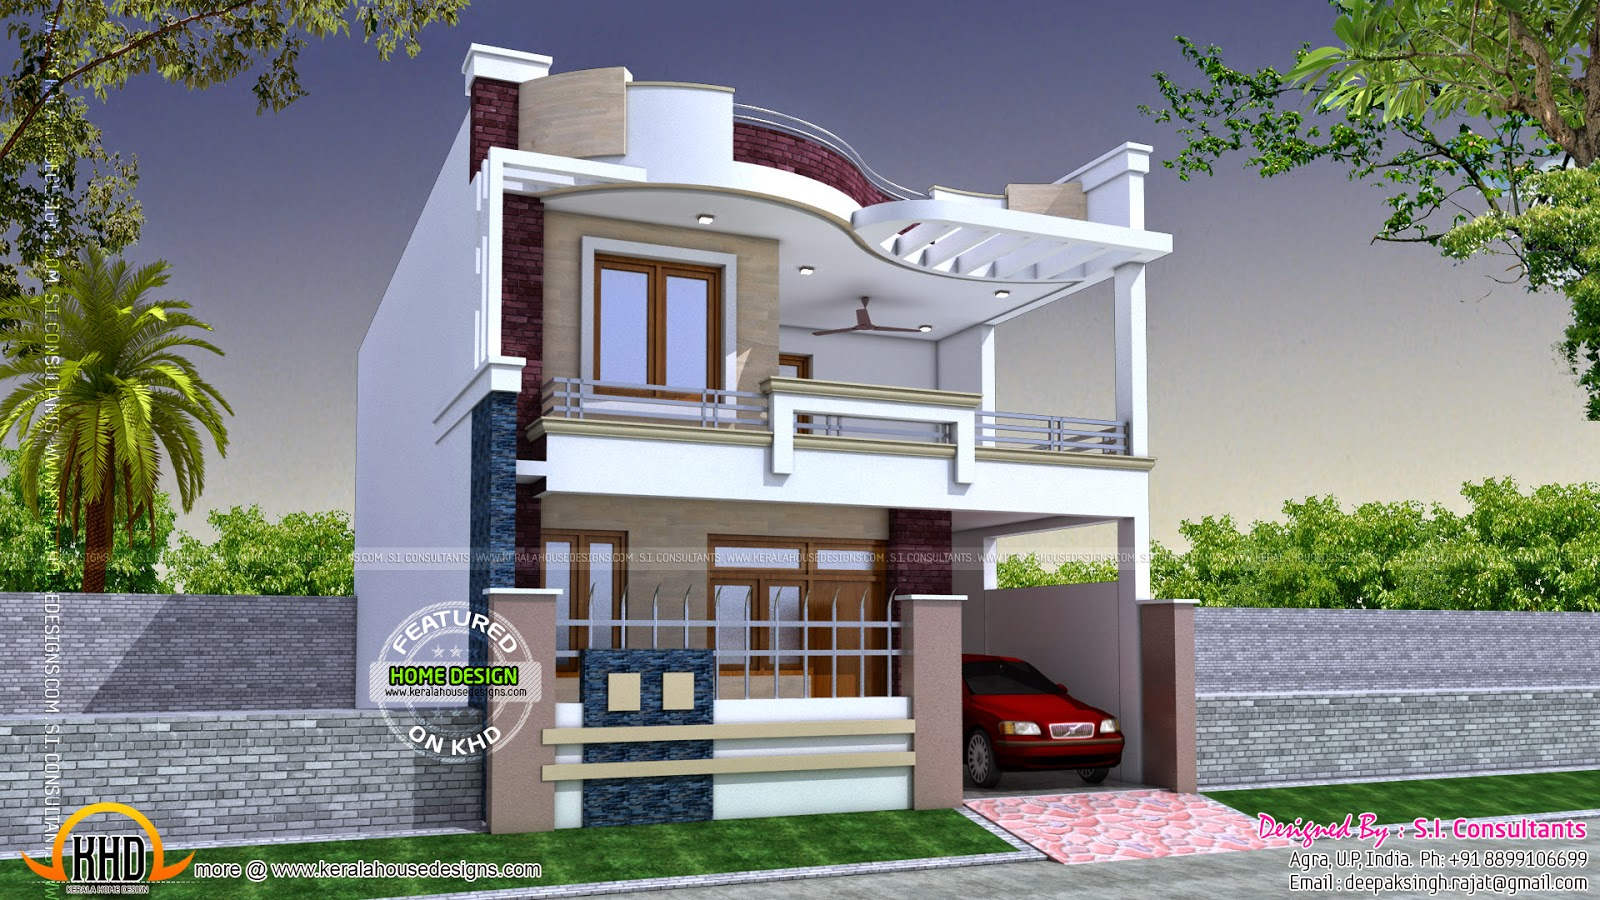 Modern indian home design kerala home design and floor plans for House design indian style plan and elevation